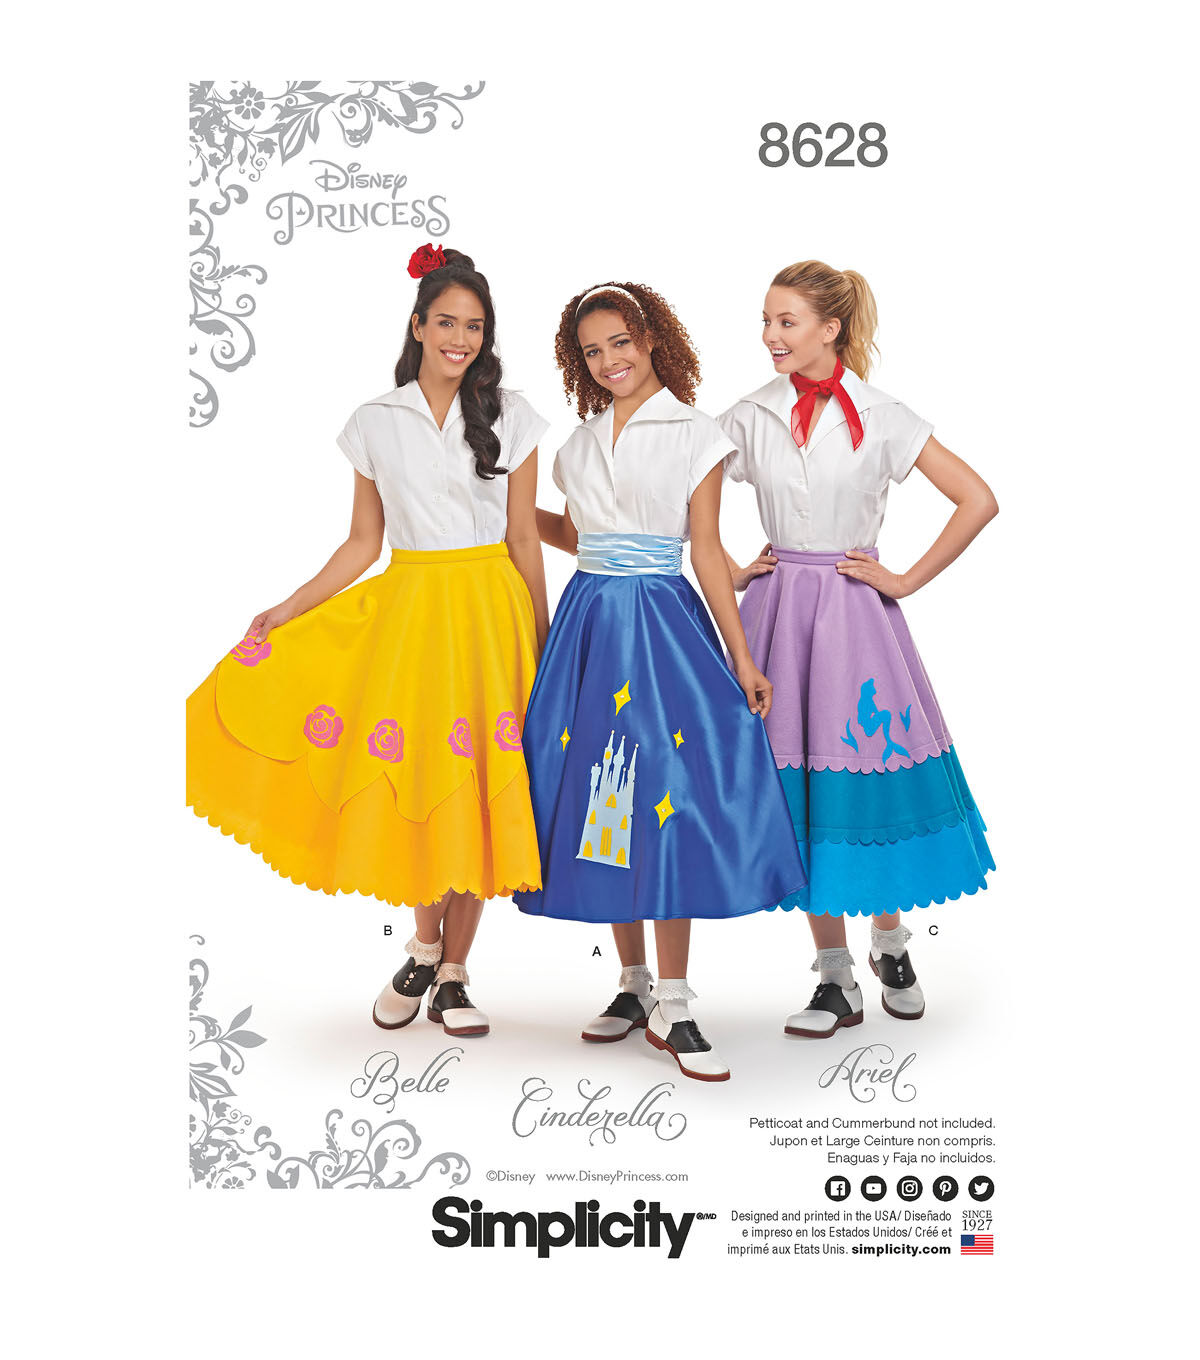 Poodle Skirts | Poodle Skirt Costumes, Patterns, History Simplicity Pattern 8628 Misses Disney Character Skirts - Size R5 14 - 22 $14.99 AT vintagedancer.com